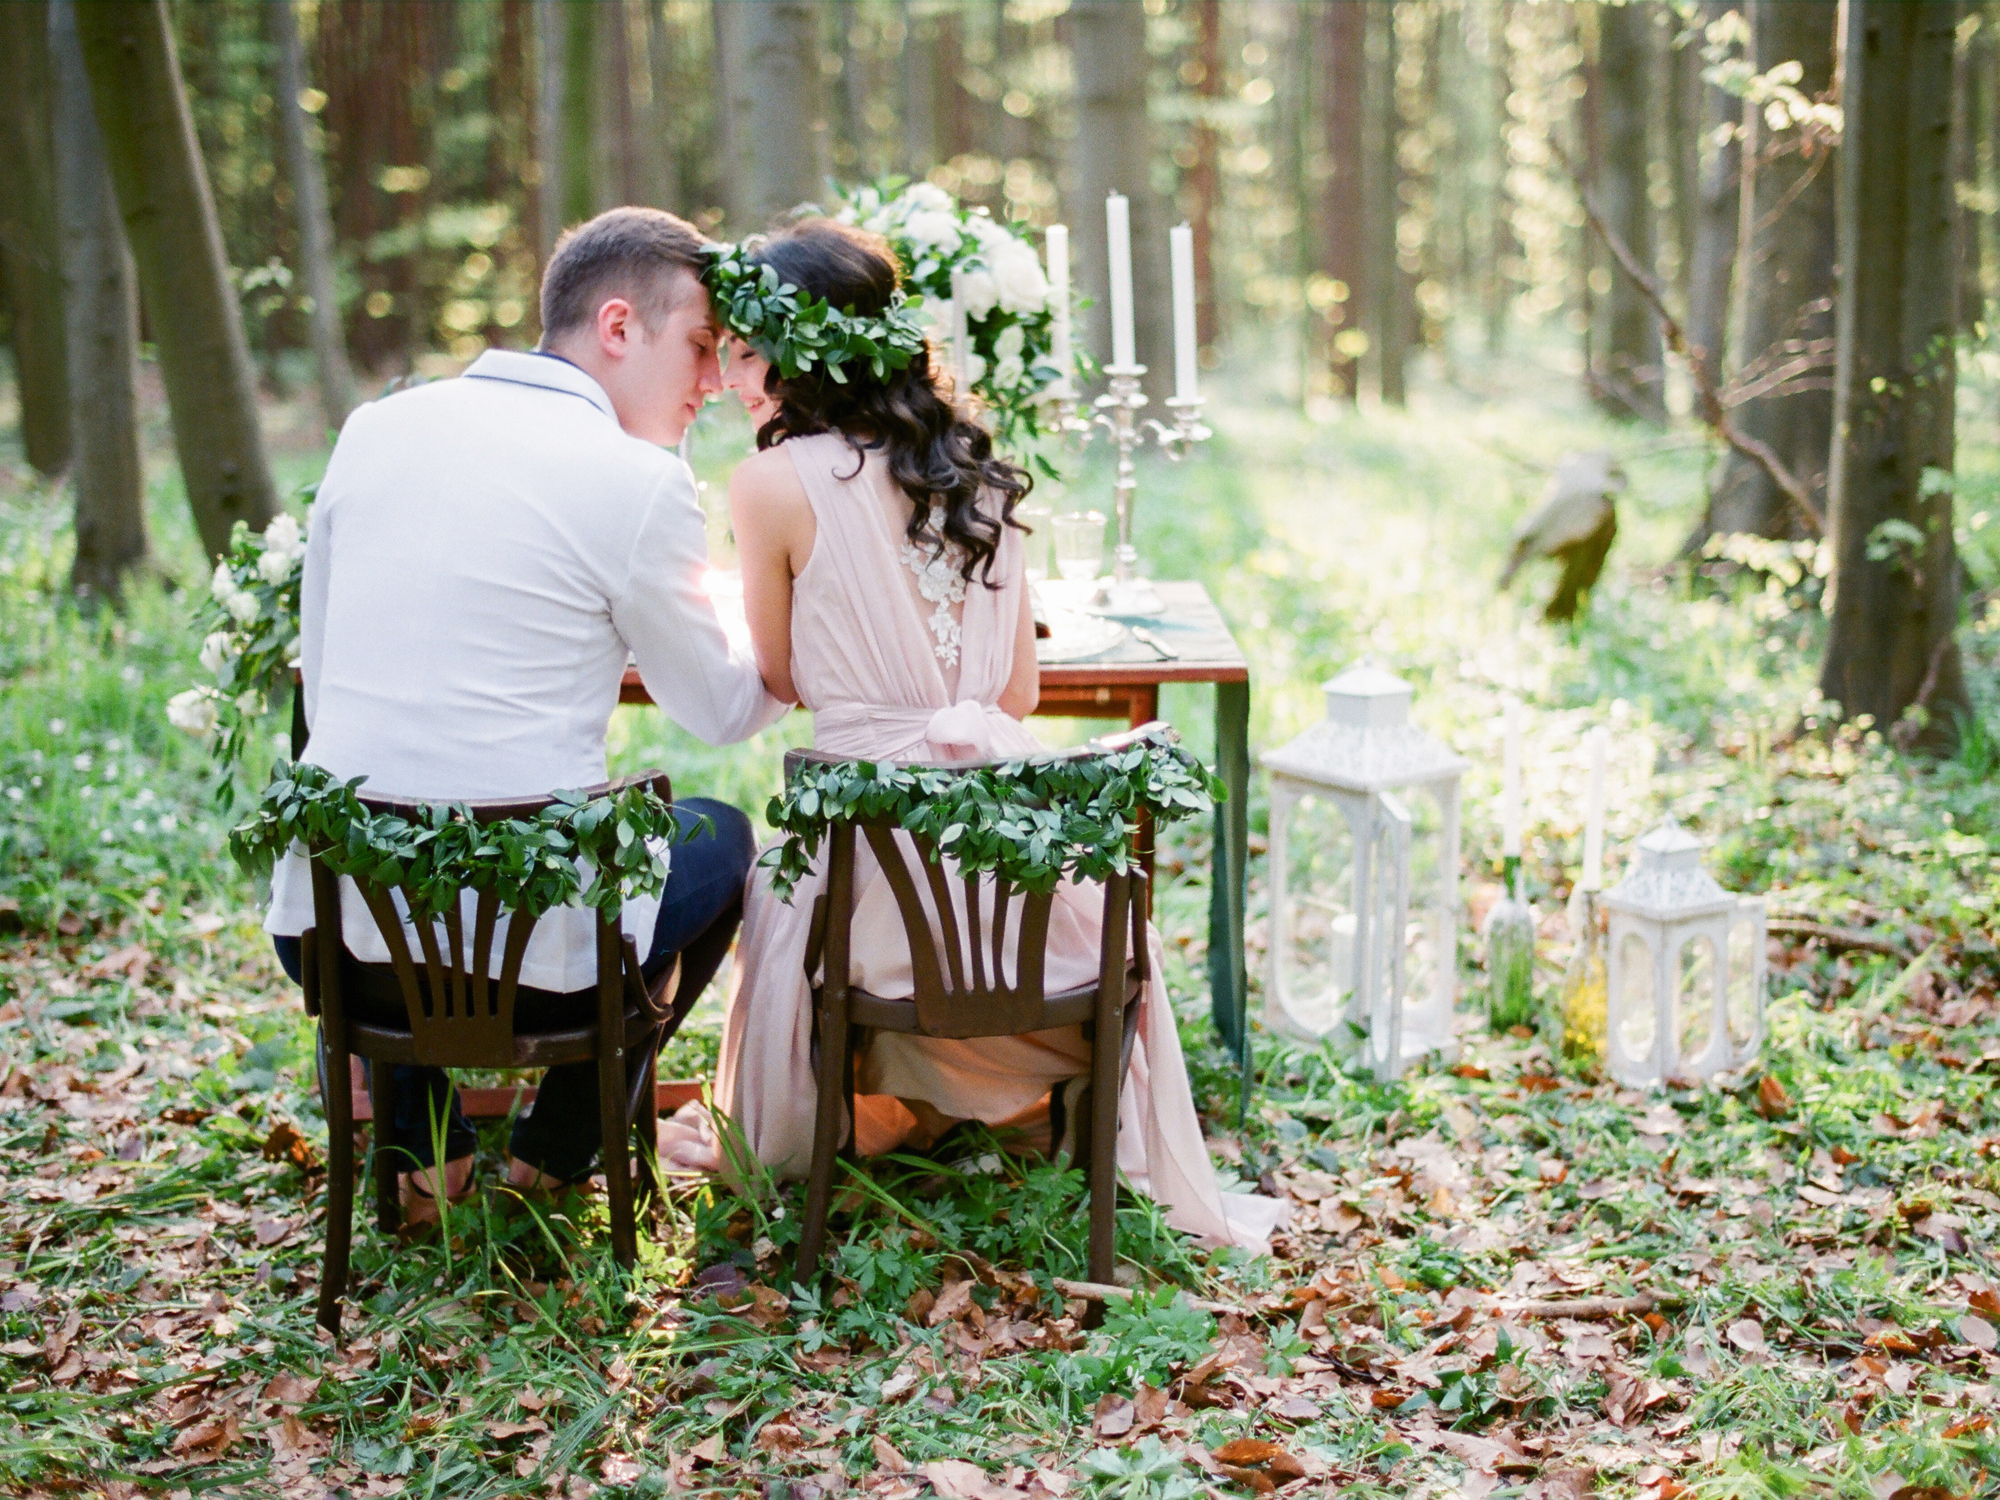 Taurus and Cancer Marriage Compatibility | LoveToKnow